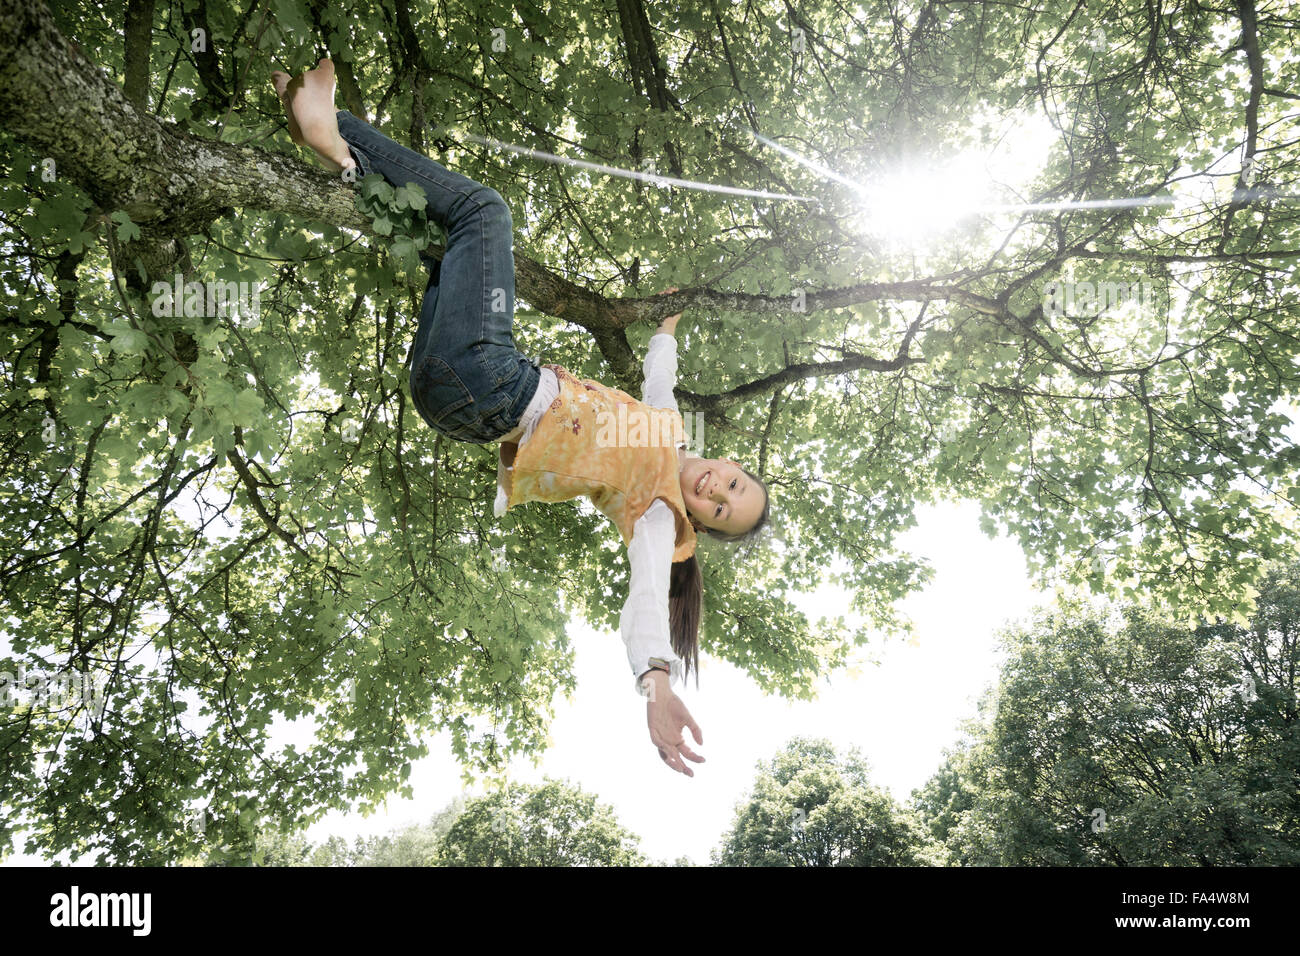 Girl hanging on tree and smiling, Munich, Bavaria, Germany - Stock Image